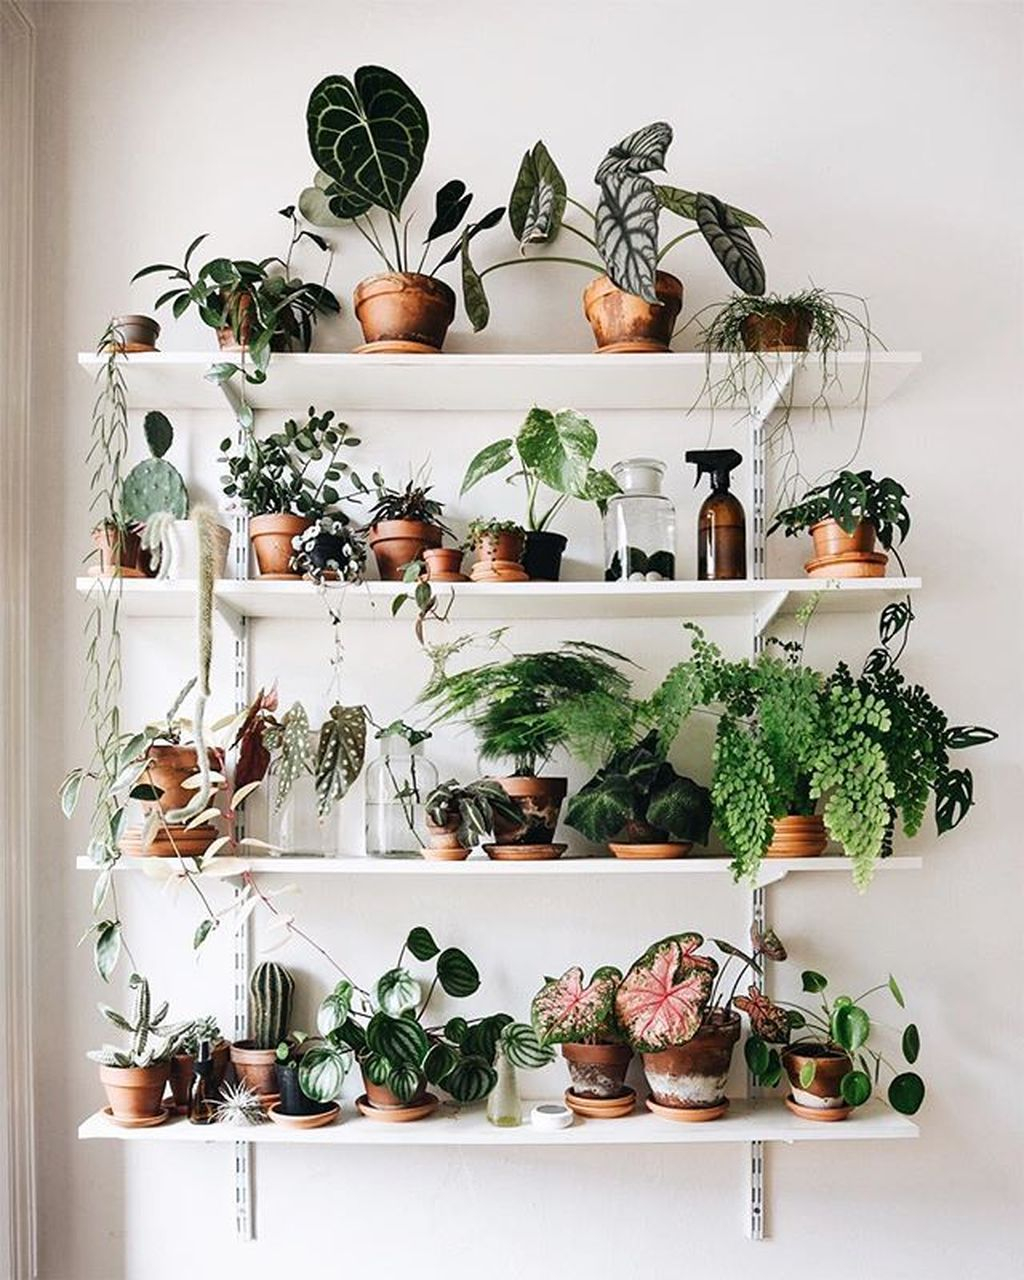 Smart Interior Design Ideas With Plants For Home 36